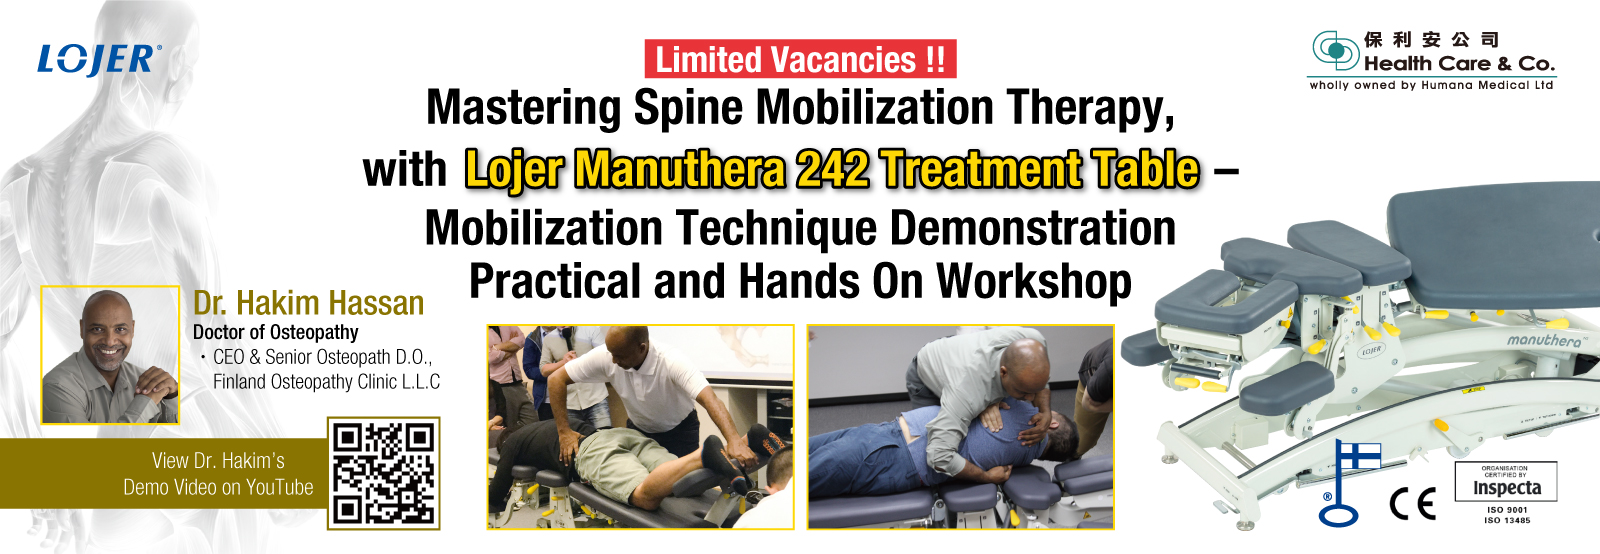 Mastering Spine Mobilization Therapy, with Lojer Manuthera 242 Treatment Table – Practical and Hands On Workshop